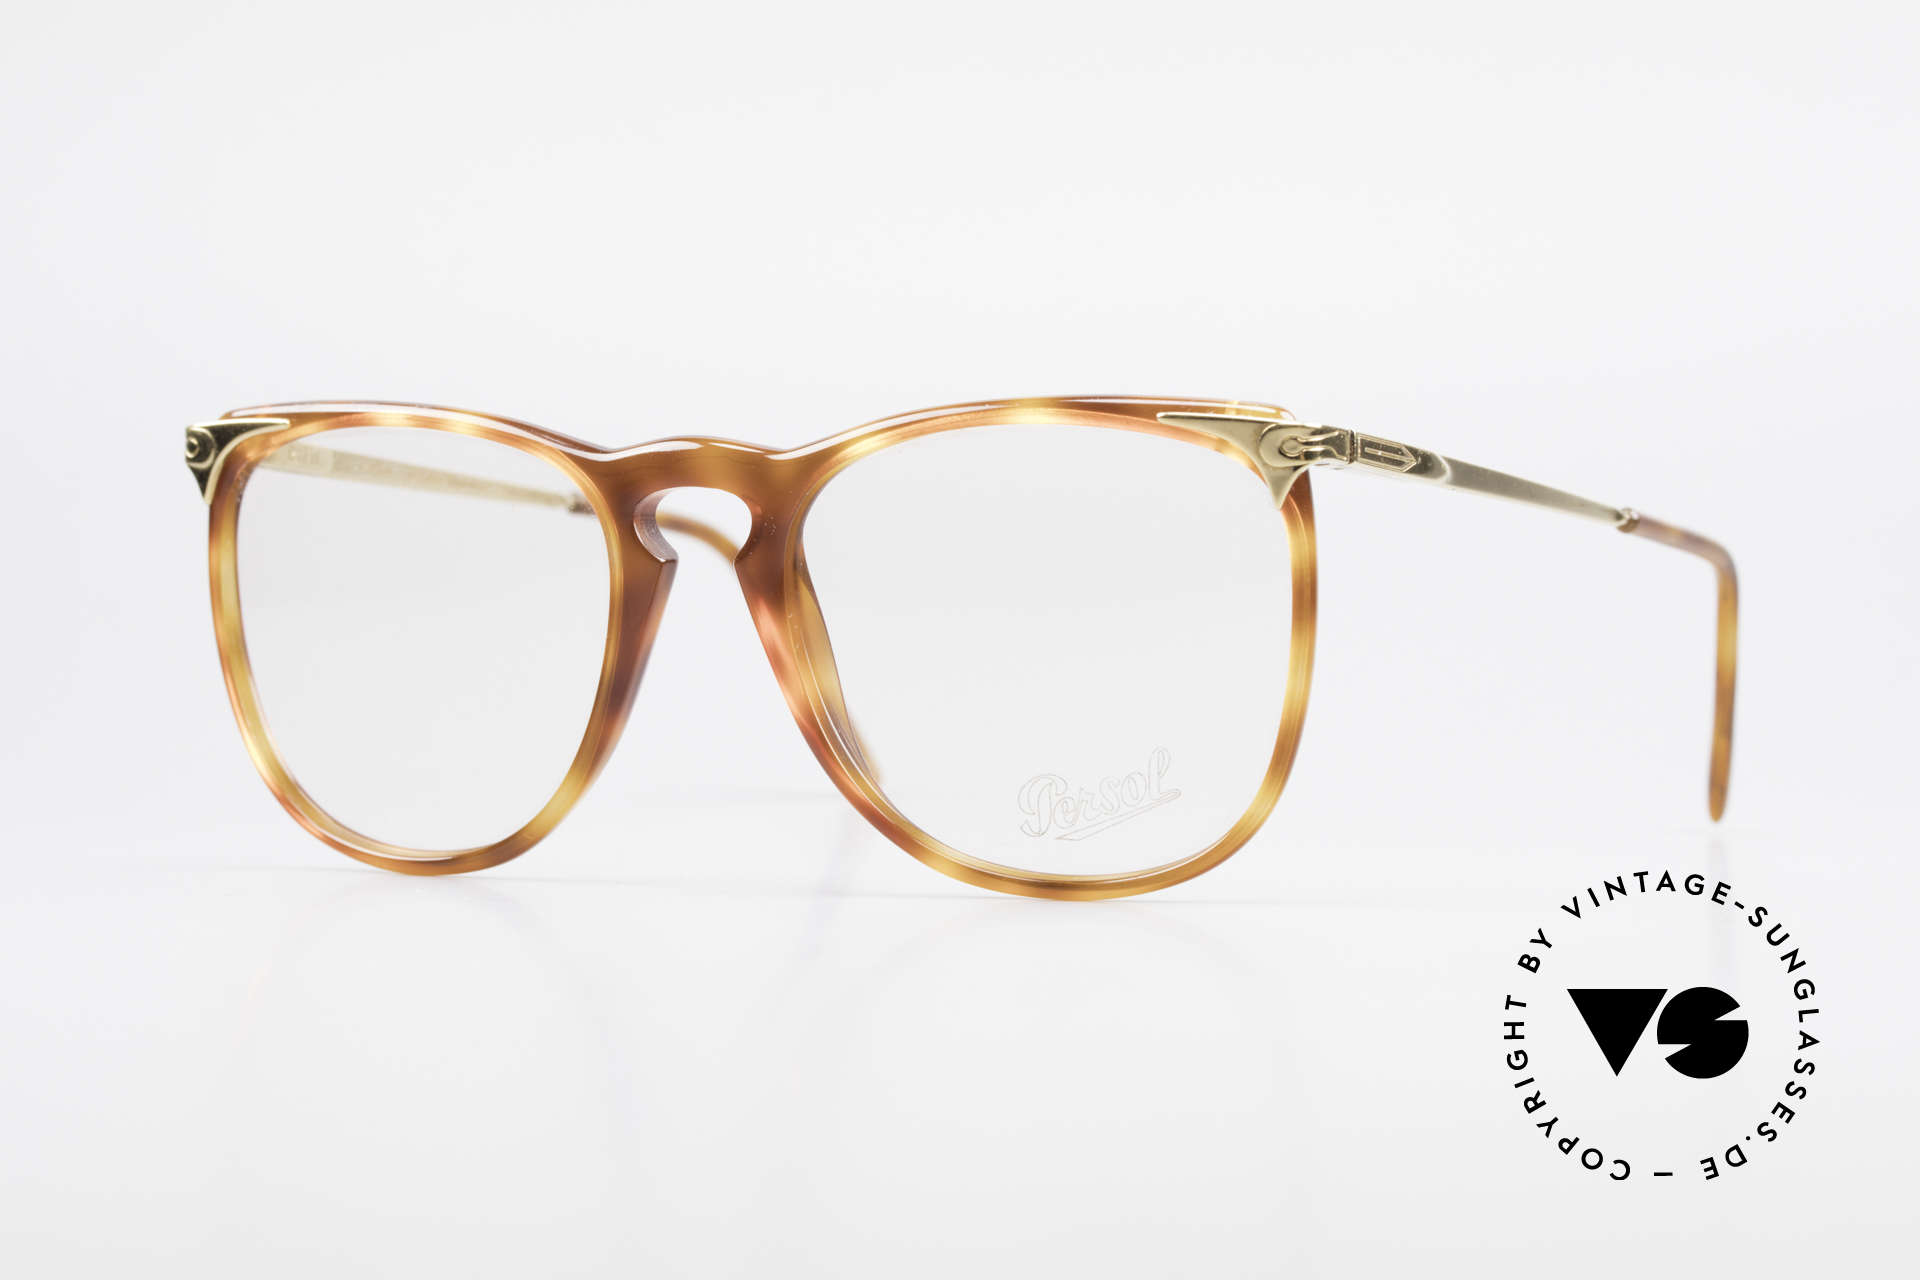 Persol Cellor 3 Ratti Old Vintage Eyeglasses 80's, vintage eyewear by Persol Ratti of the 1980's, Made for Men and Women